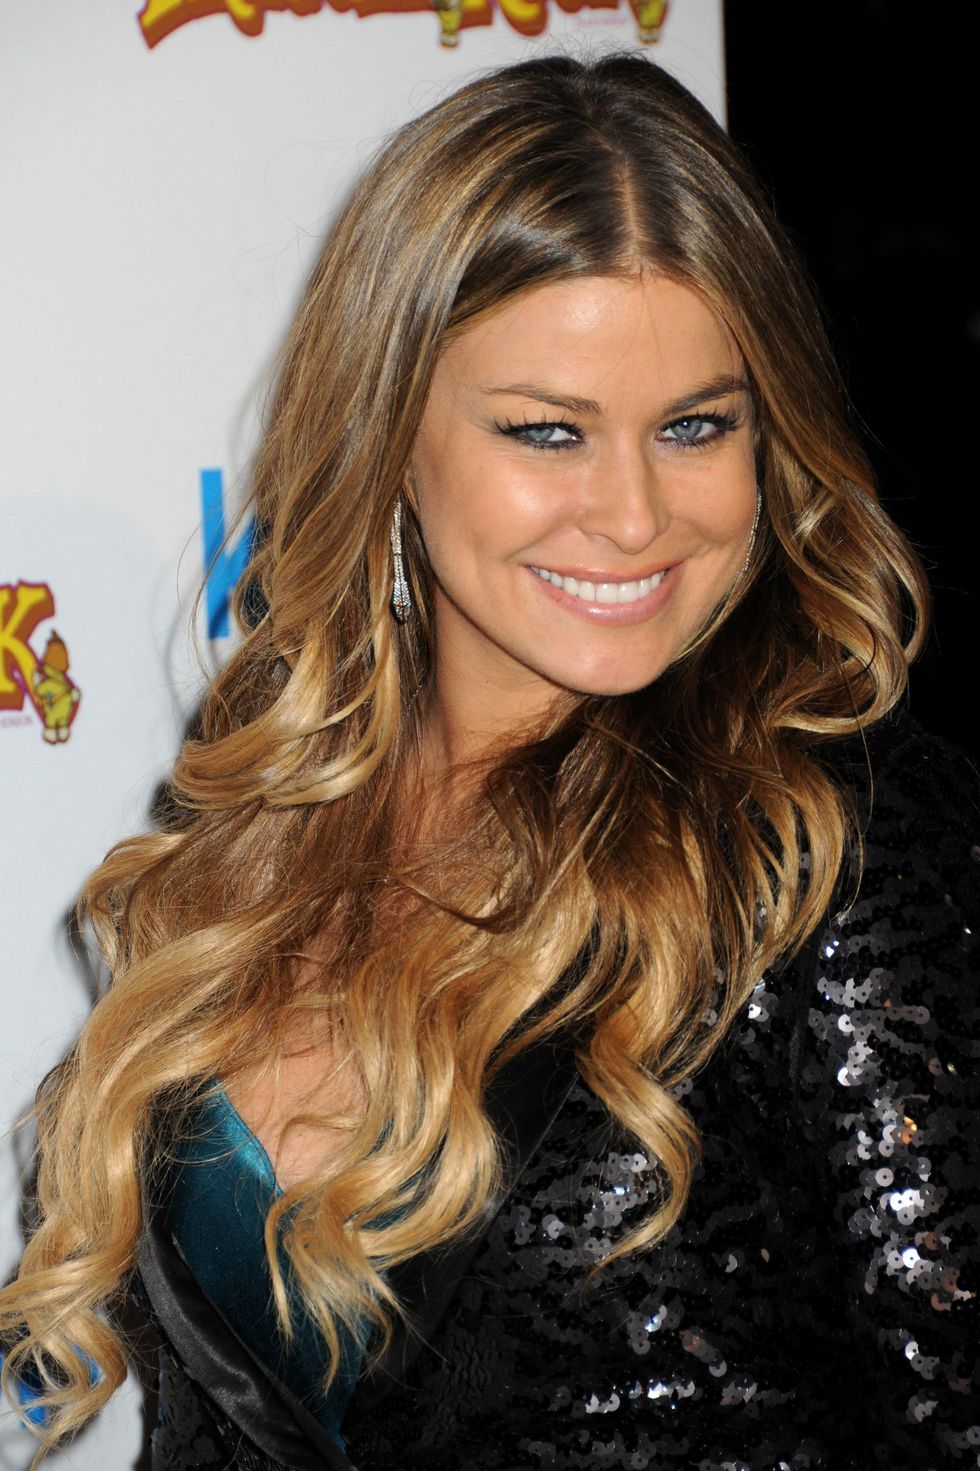 carmen-electra-fraggle-rock-event-in-west-hollywood-01